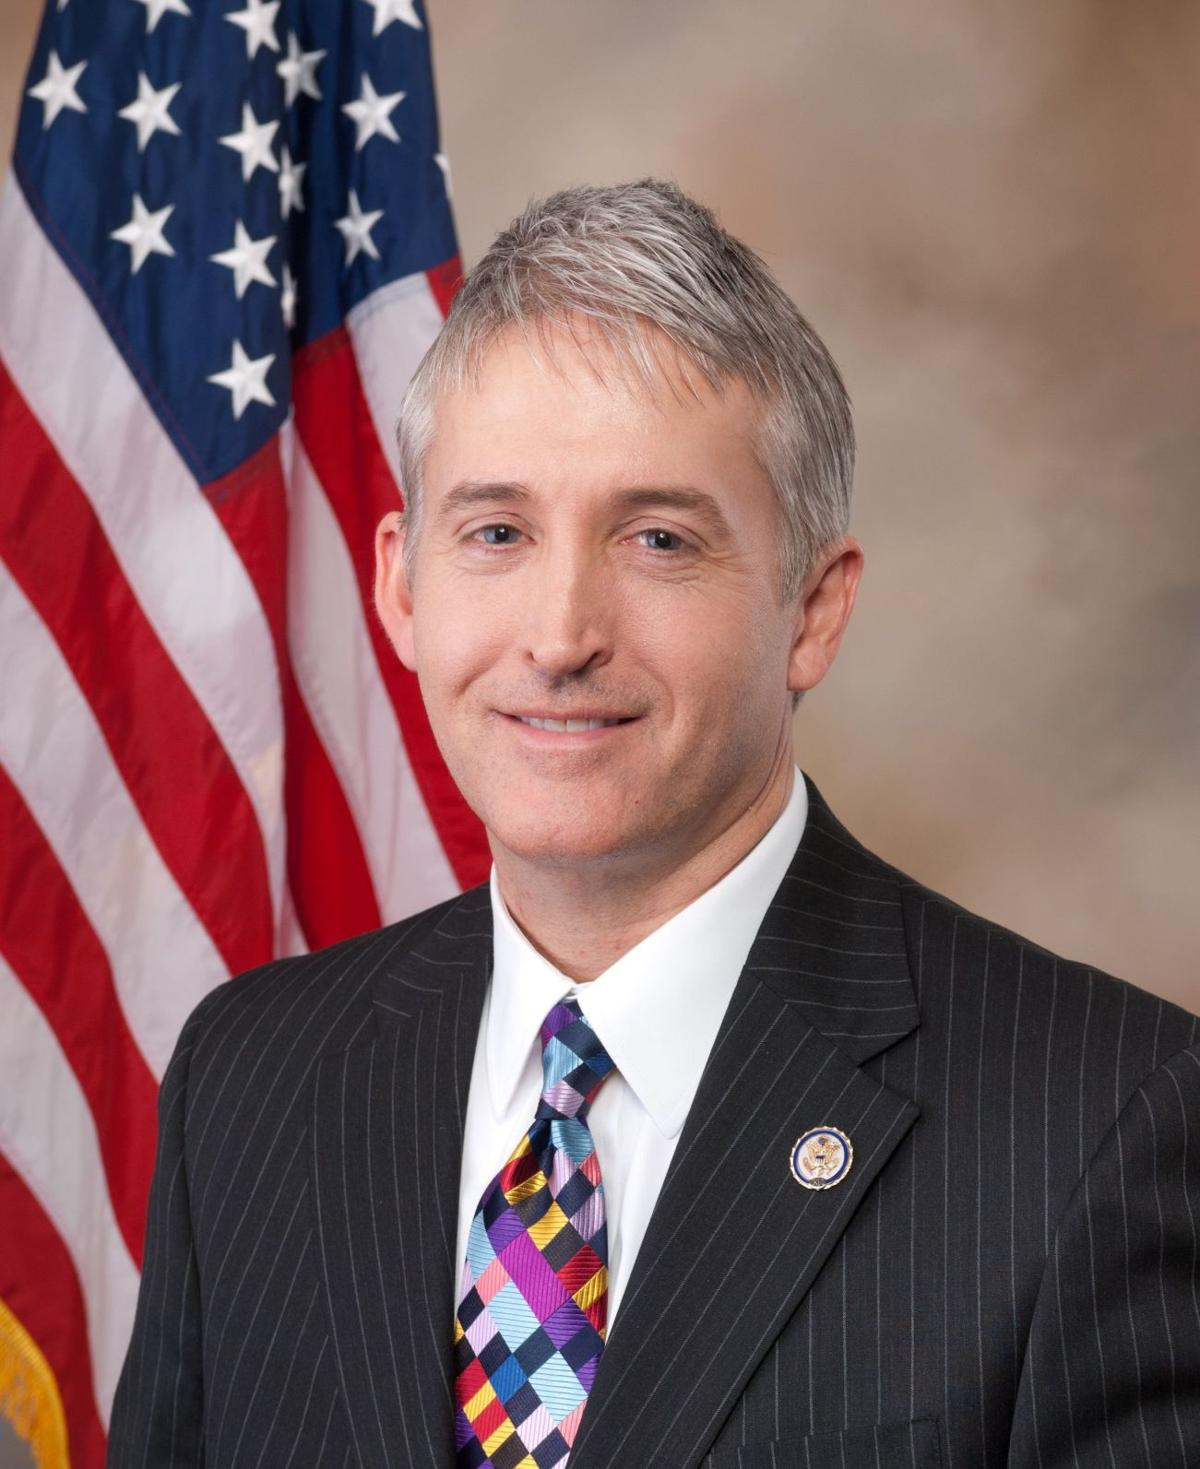 Boehner to appoint select Benghazi committee; S.C. Rep. Gowdy may chair it